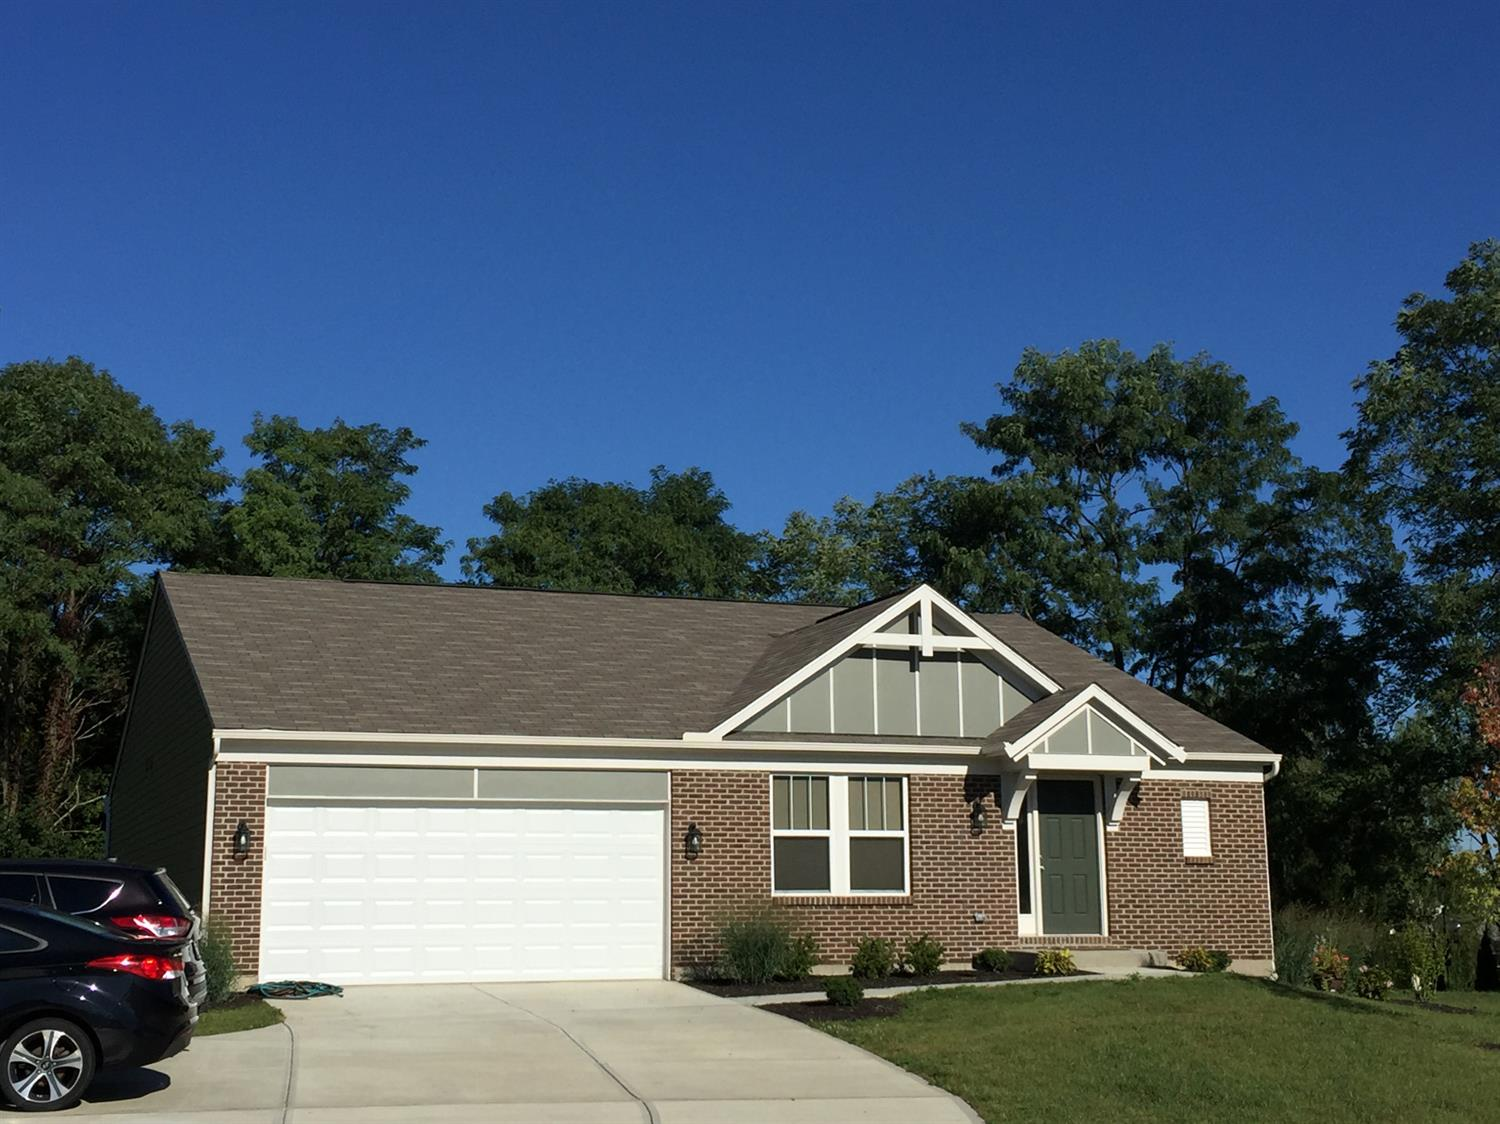 Photo 1 for 10213 Cardigan Dr Union, KY 41091